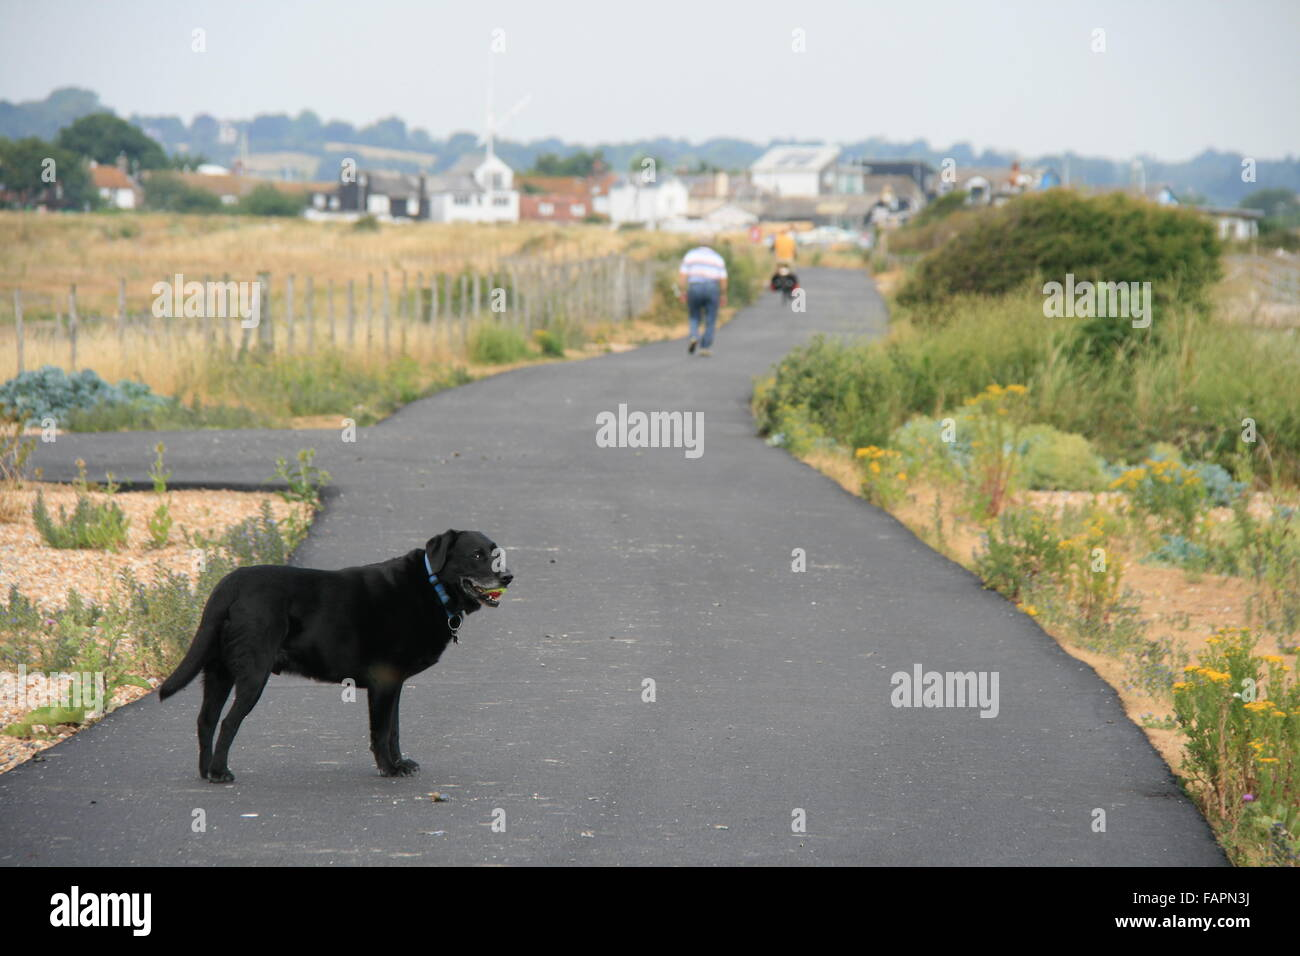 A SENIOR BLACK LABRADOR MALE DOG OUT FOR A WALK,A DISTANT VIEW SHOWING WHOLE DOG HOLDING BALL AND VIEW VISIBLE - Stock Image